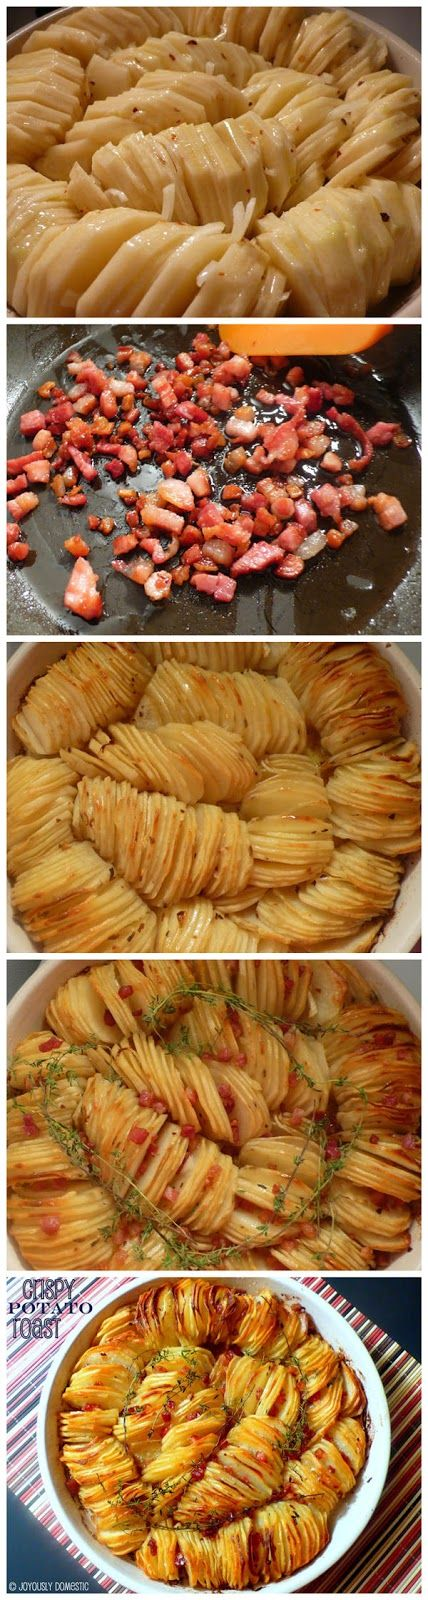 Crispy Potato Roast - cookglee recipe pictures